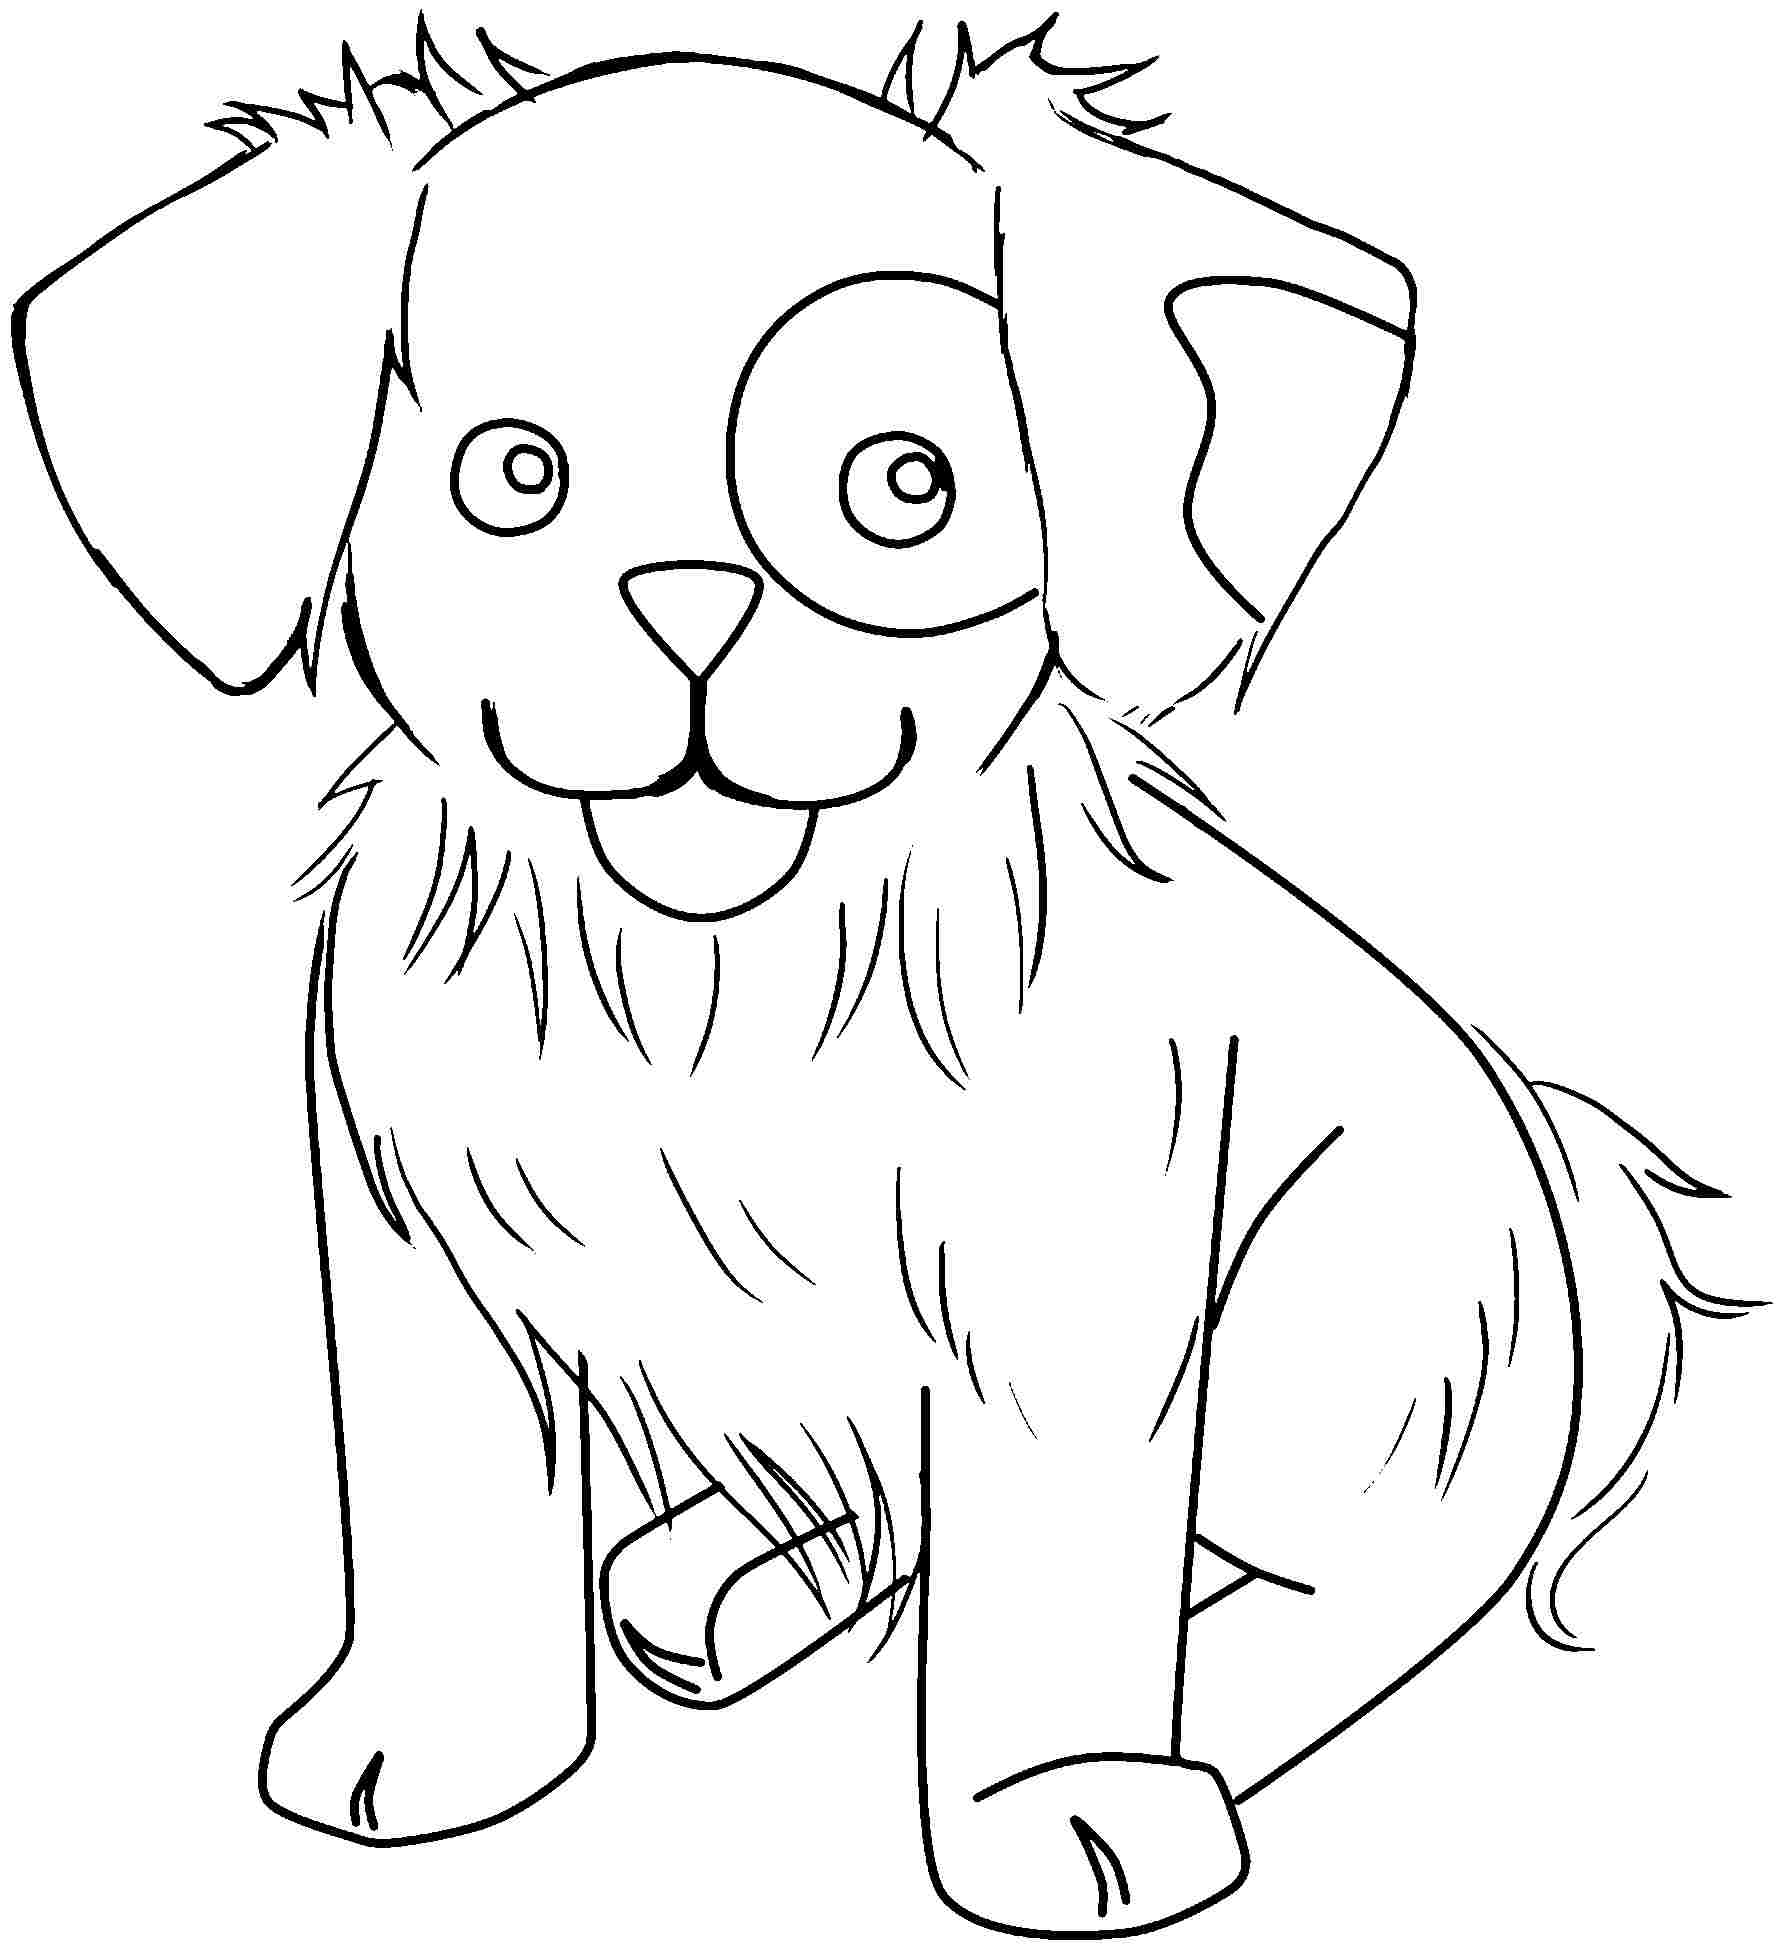 Free Printable Coloring Pages Of Cute Animals - Coloring Home